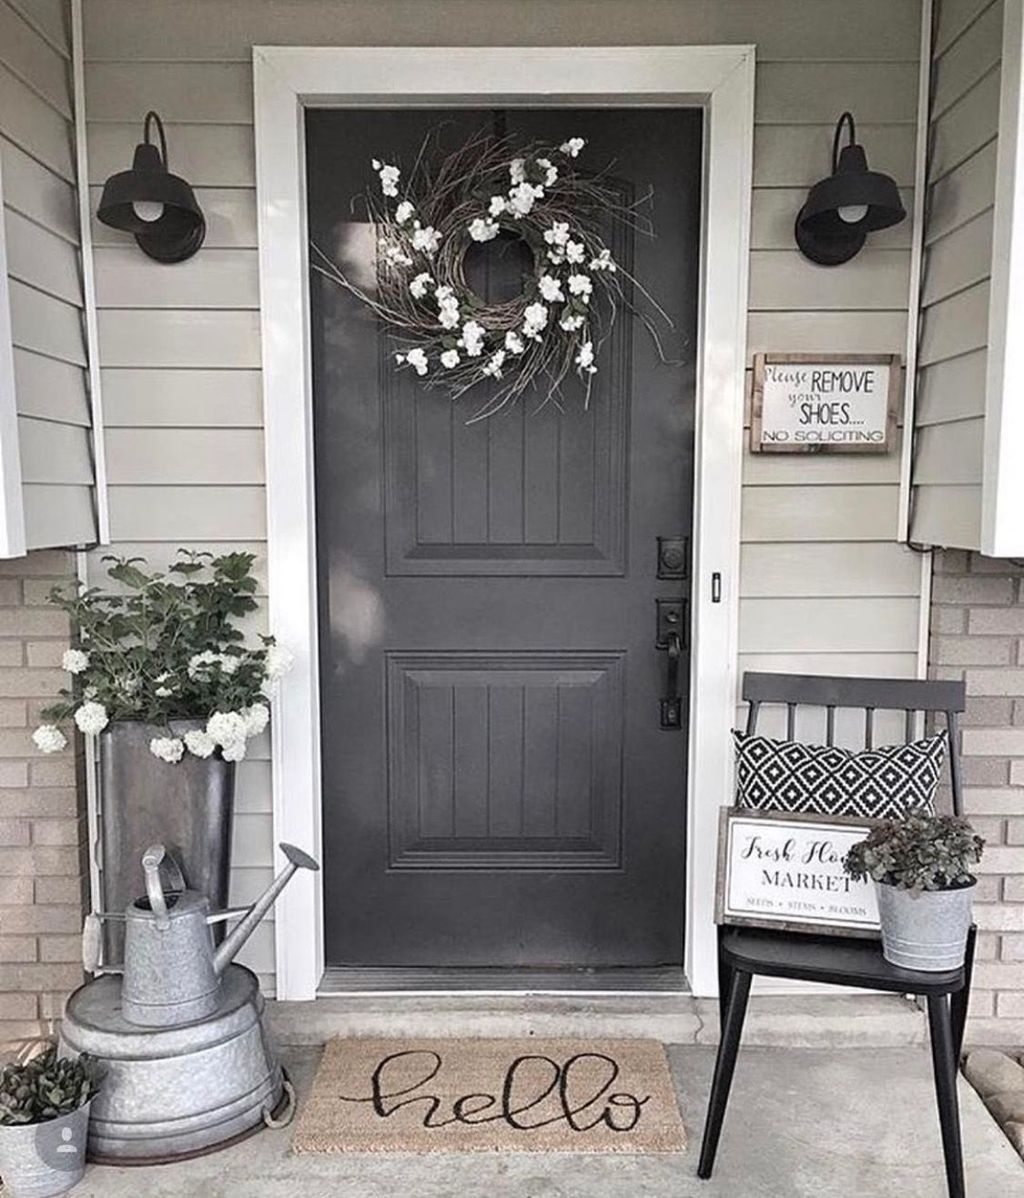 53 Unique Apartment Small Porch Decorating Ideas #smallporchdecorating